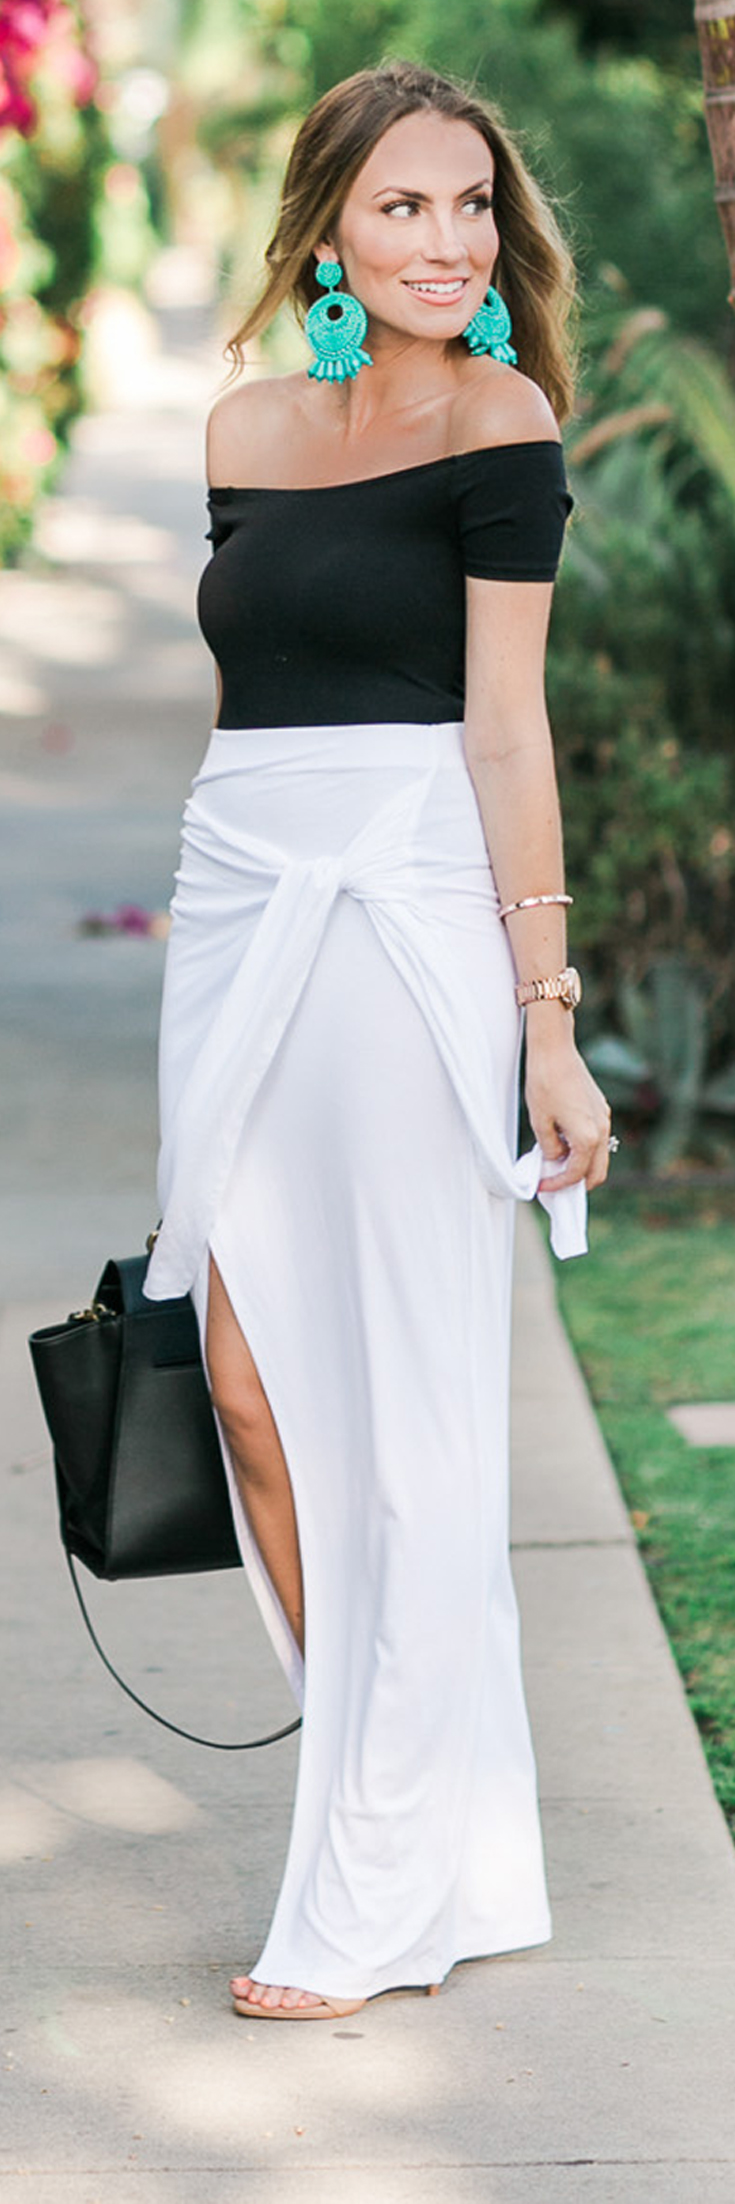 Classic Staples For Date Night